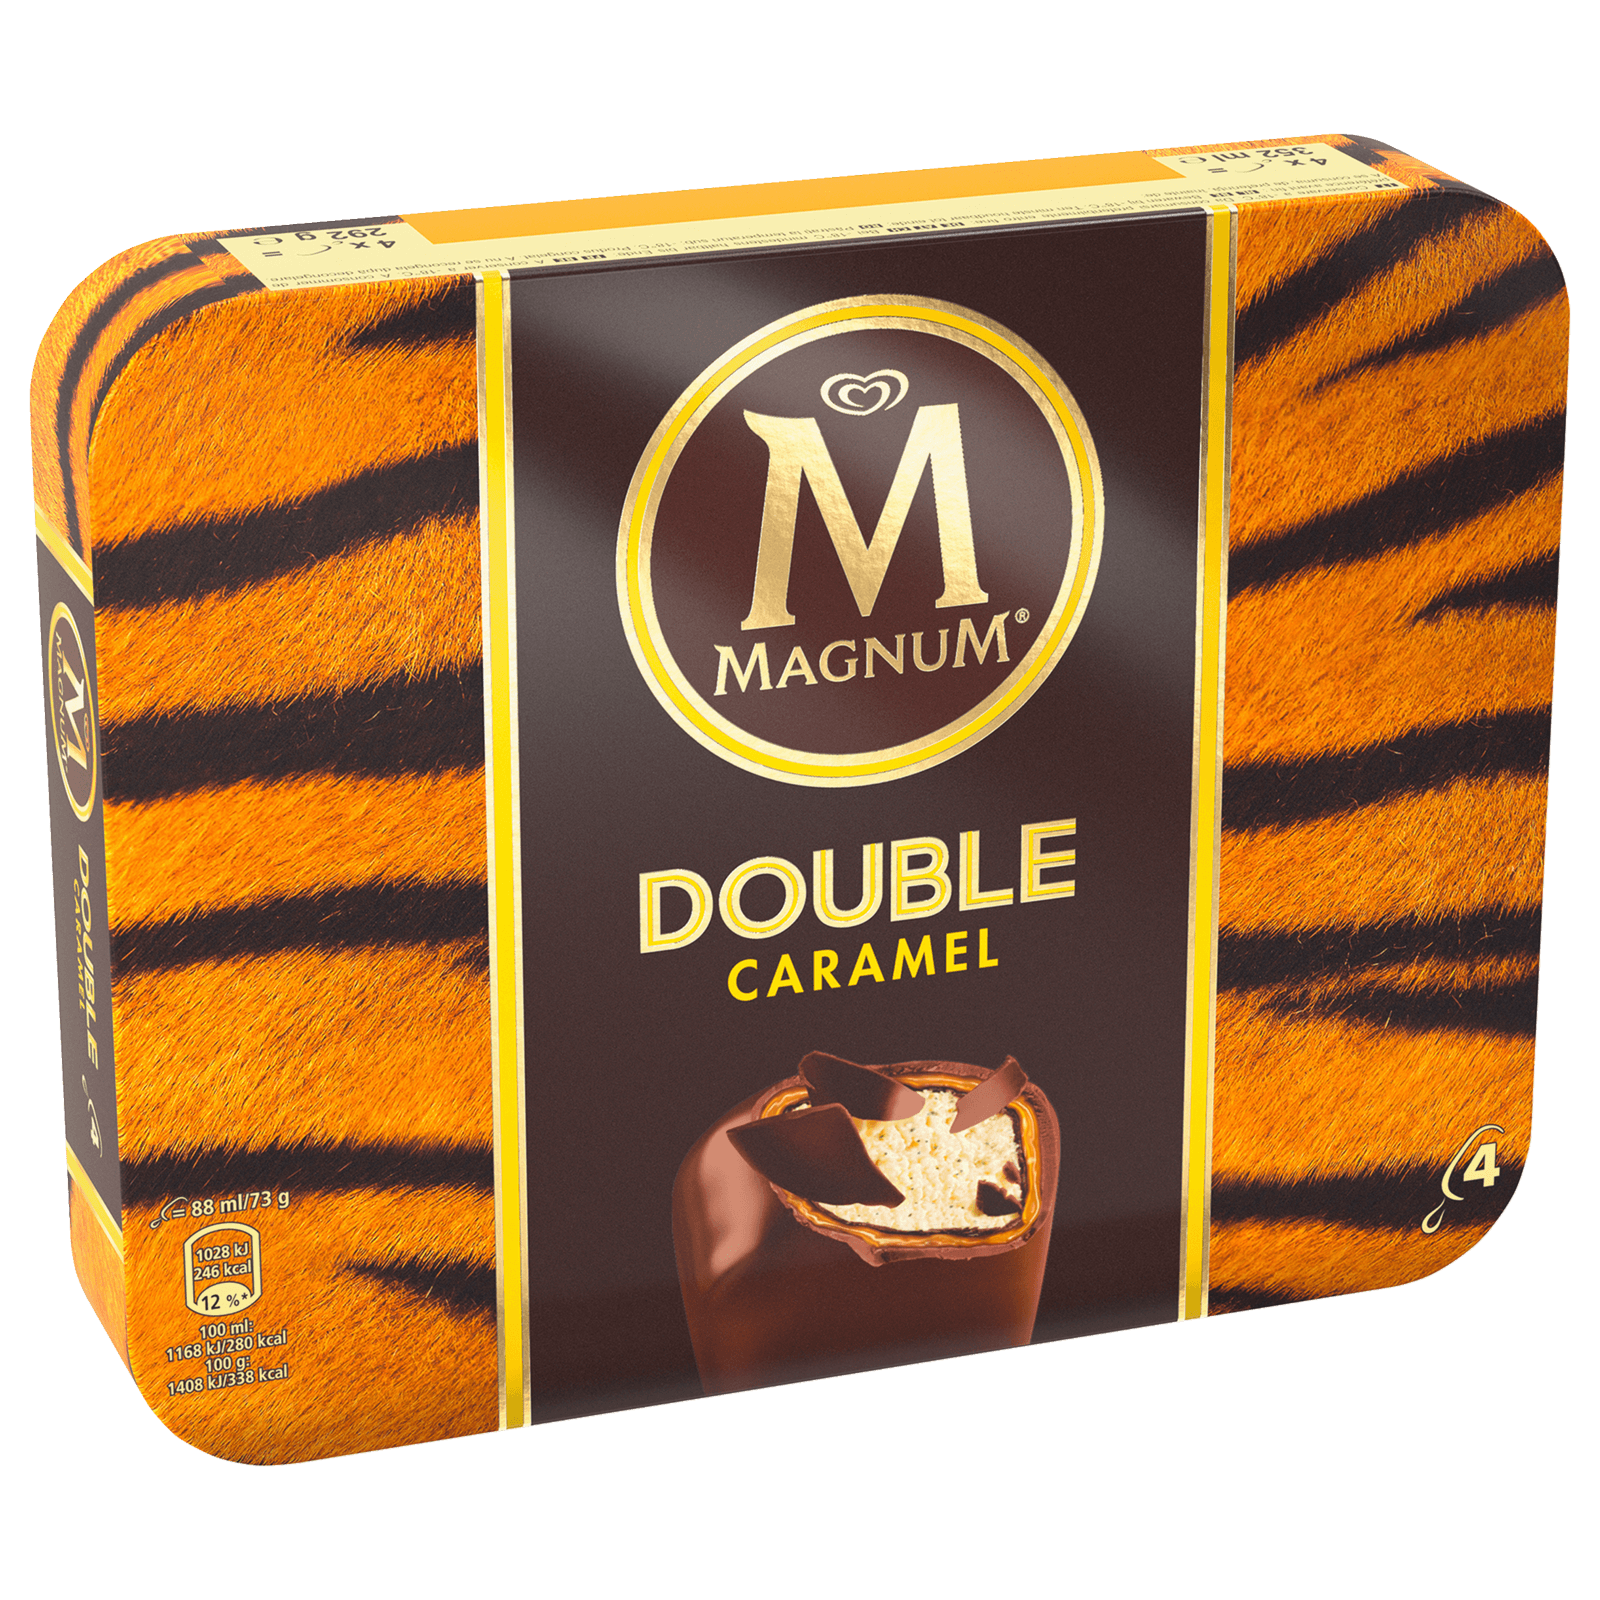 Magnum Double Caramel Familienpackung Eis 4x88ml Bei Rewe Online